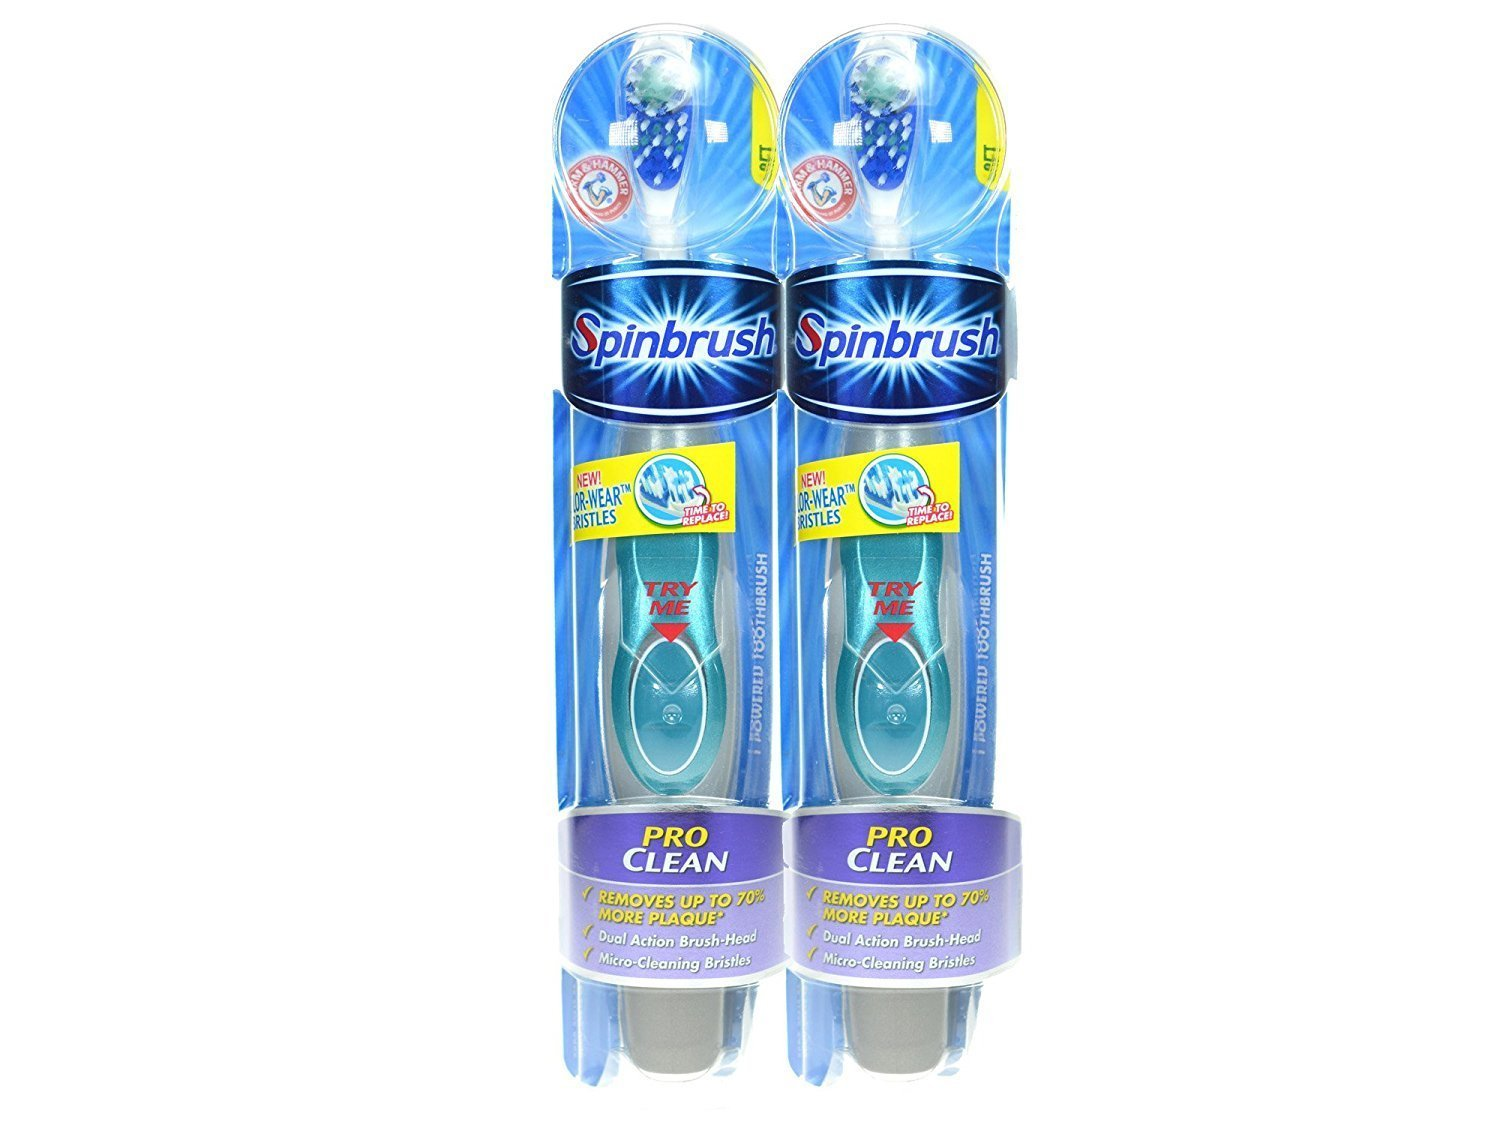 Arm & Hammer Spinbrush Pro Clean Soft Powered Toothbrush (Pack of 2)